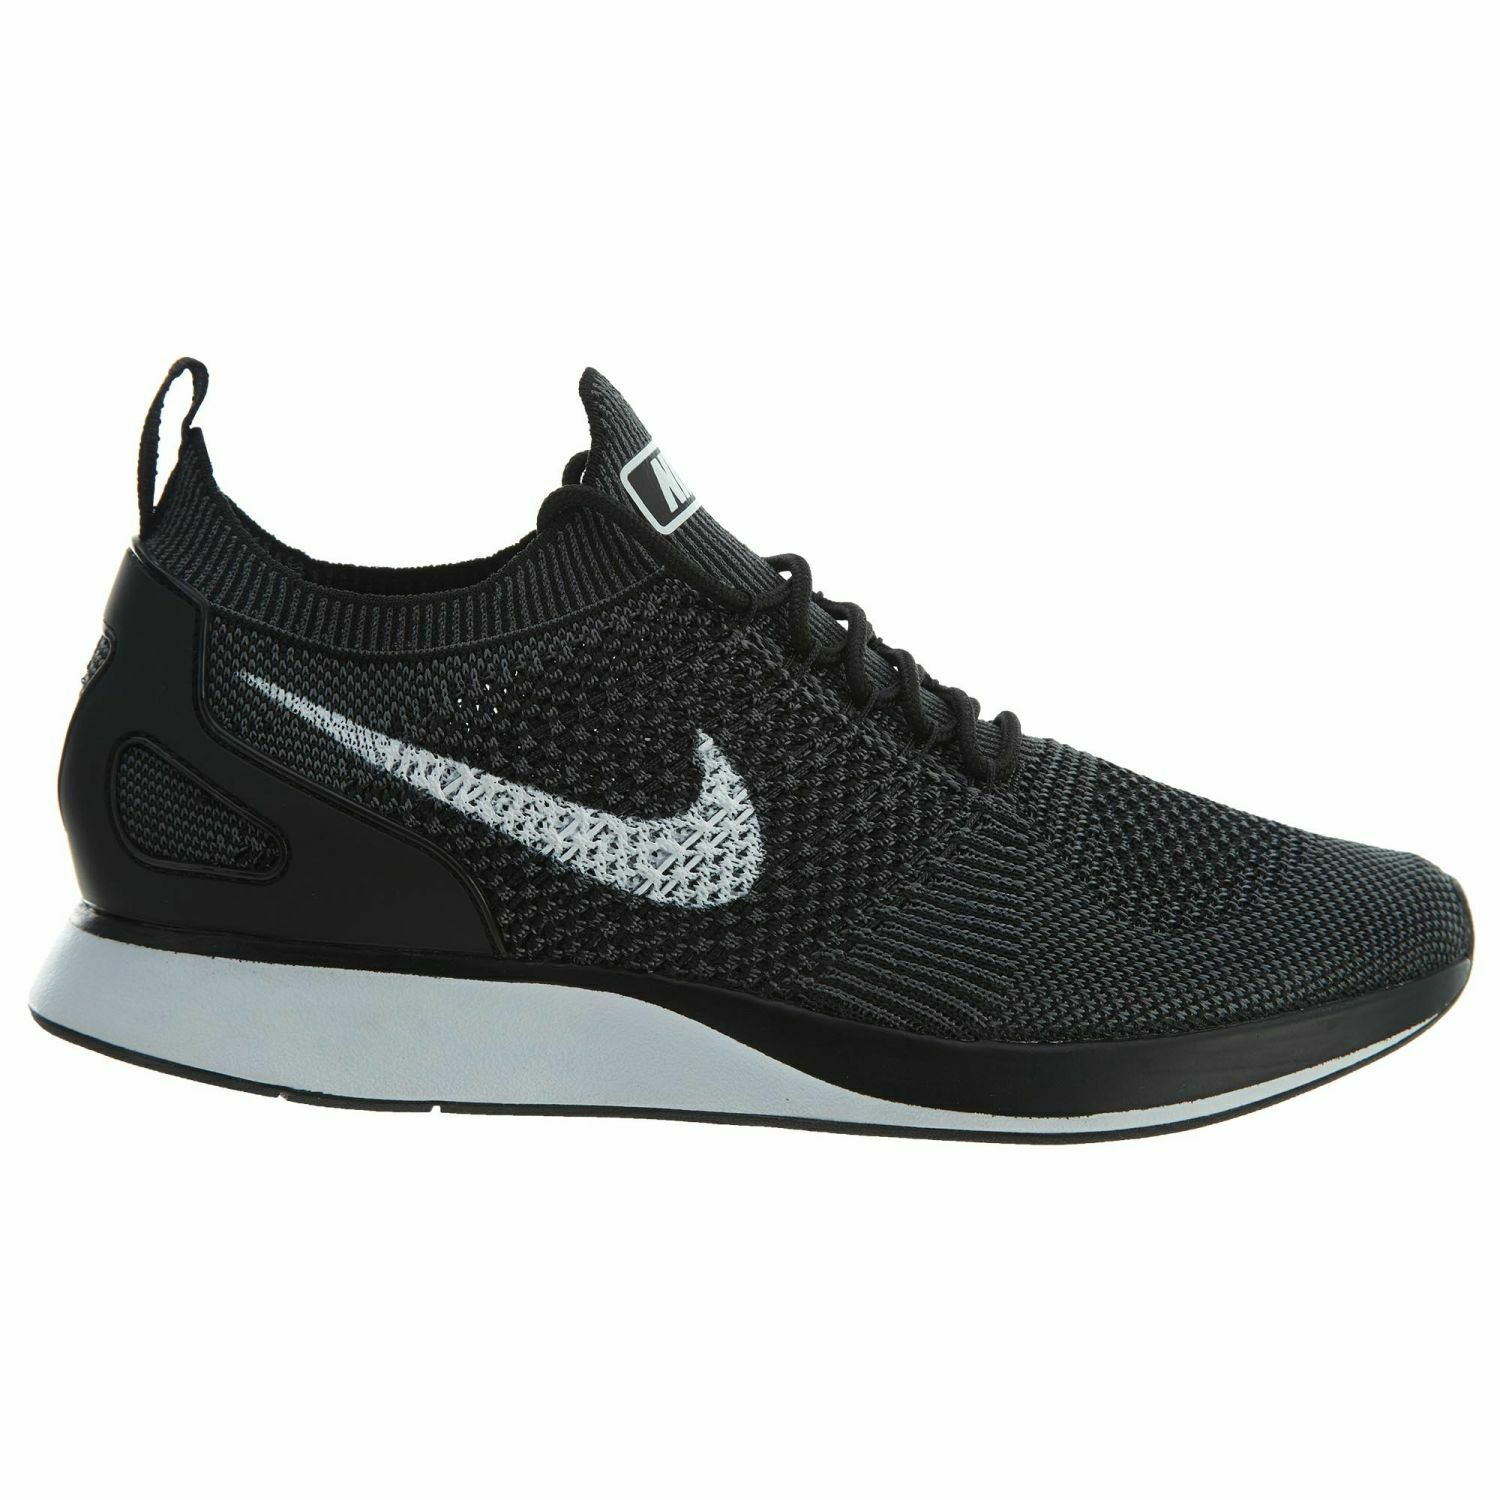 Nike Air Zoom Mariah Flyknit Racer Mens 918264-001 Black Running shoes Size 8.5